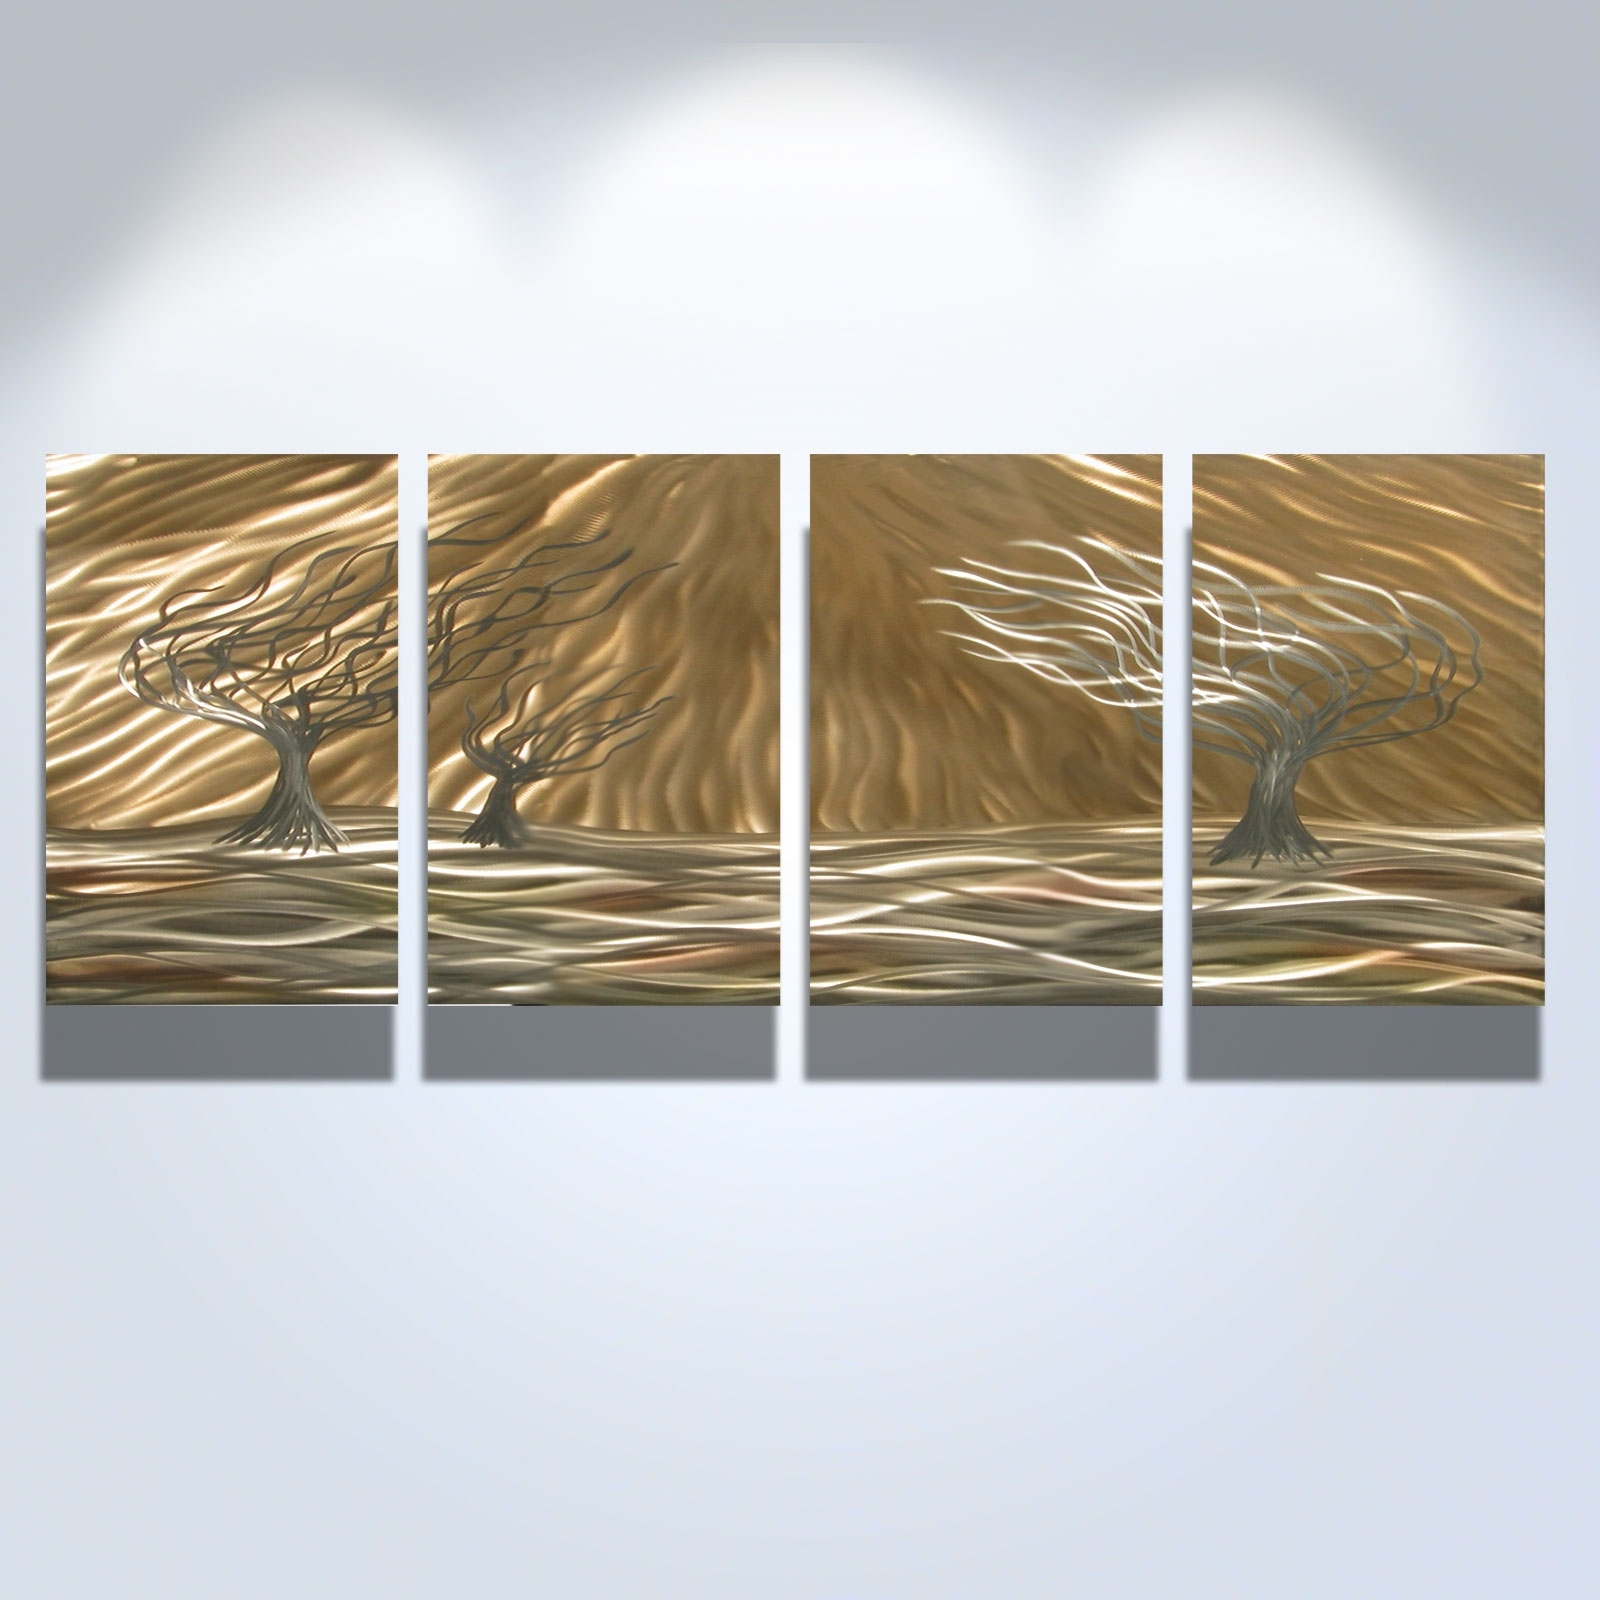 Favorite 3 Trees 4 Panel – Abstract Metal Wall Art Contemporary Modern Pertaining To Abstract Wall Art (View 7 of 15)